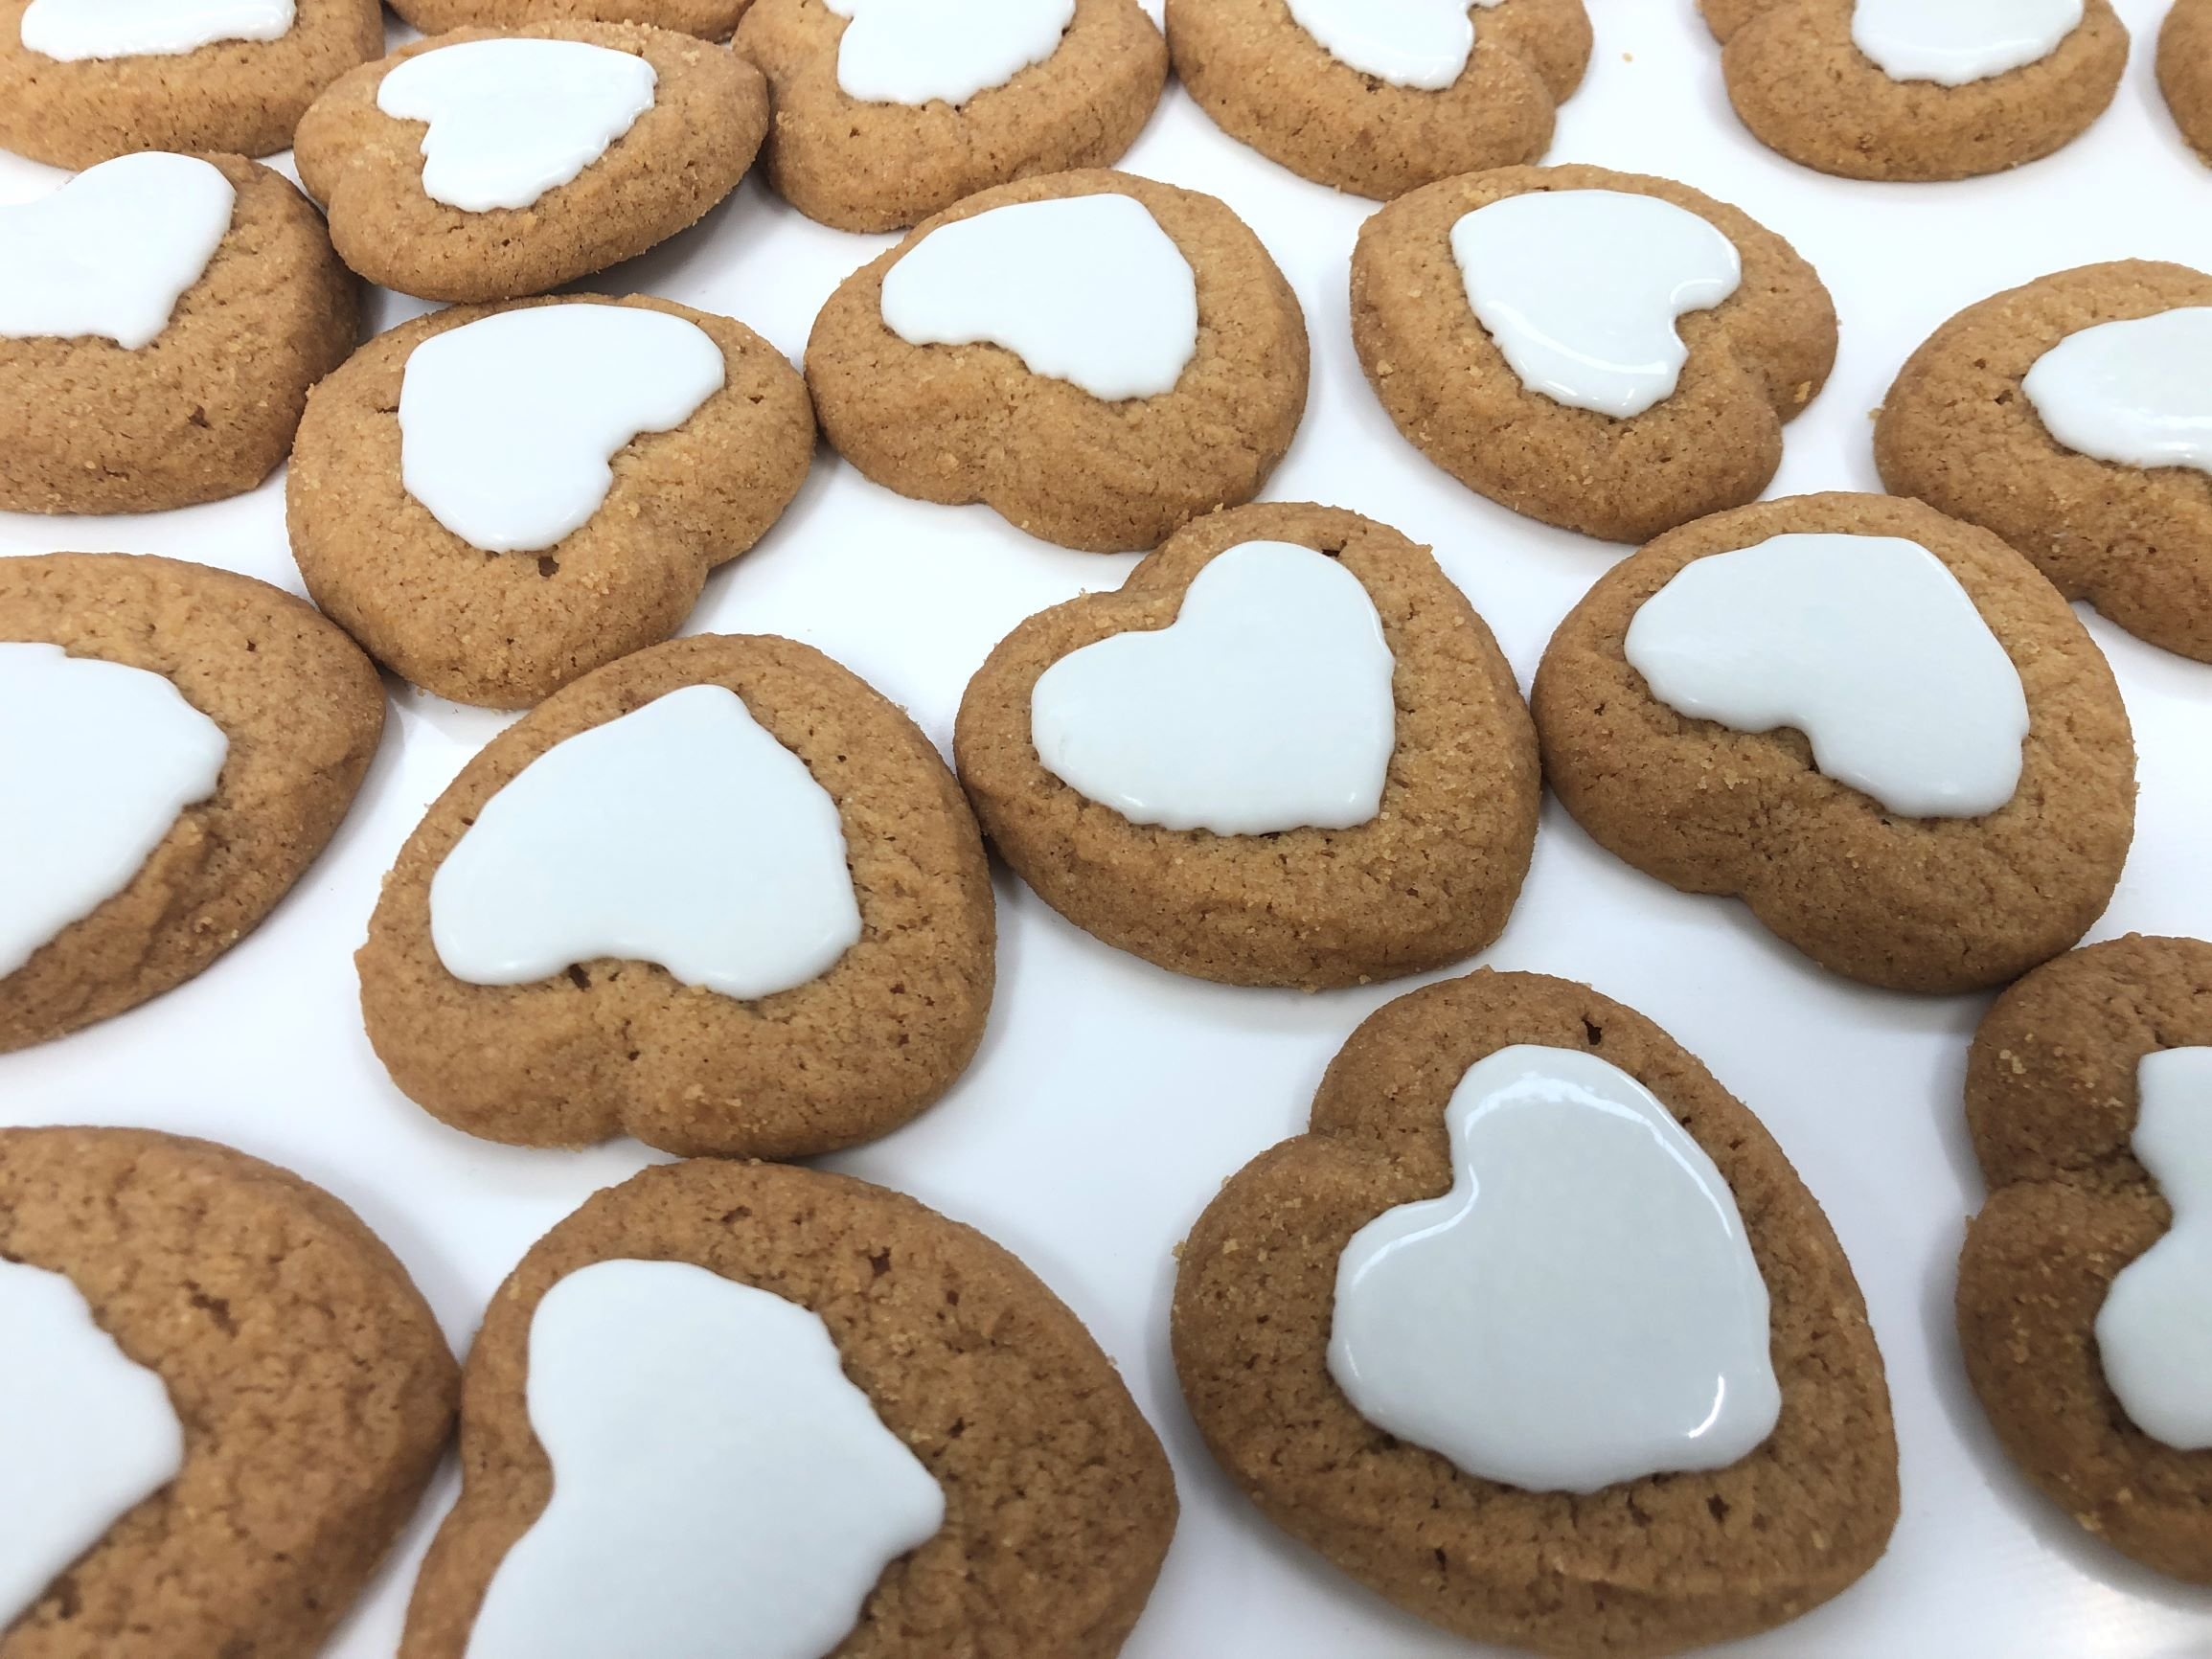 Heart-shaped biscuits decorated with white chocolate by FoodJet chocolate depositor